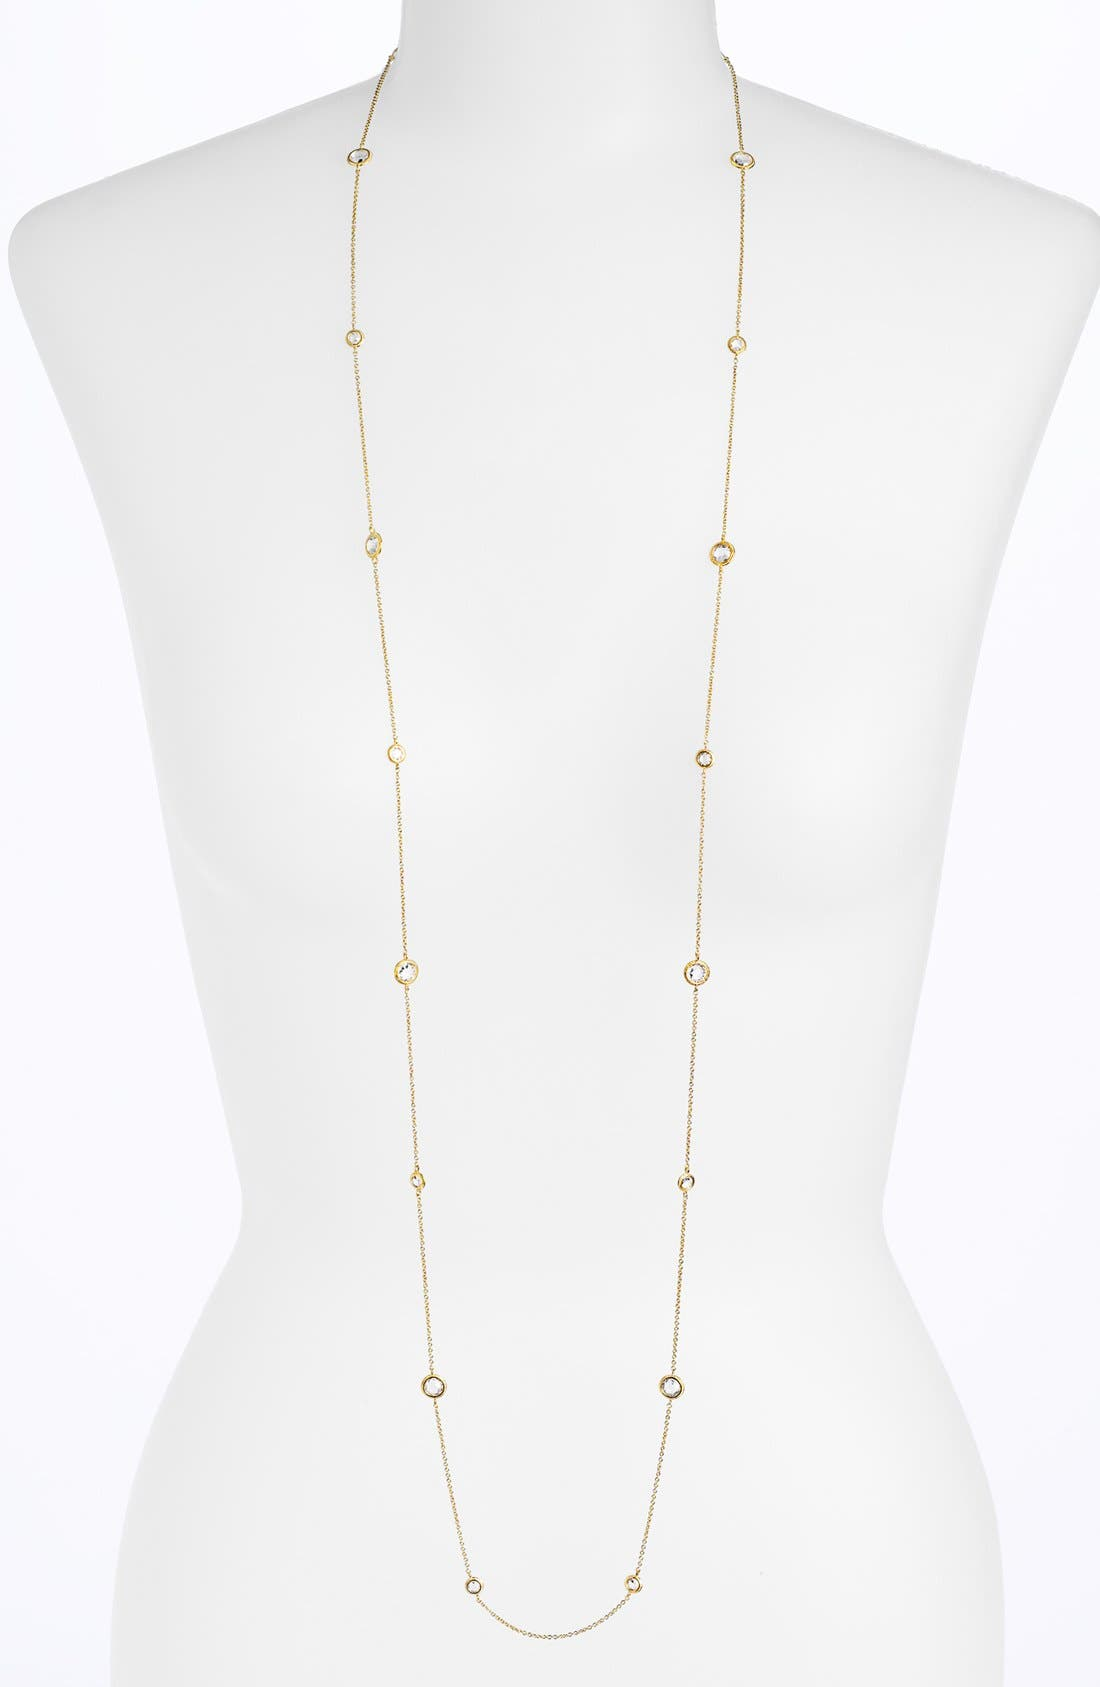 Alternate Image 1 Selected - Nadri Long Bezel Station Necklace (Nordstrom Exclusive)